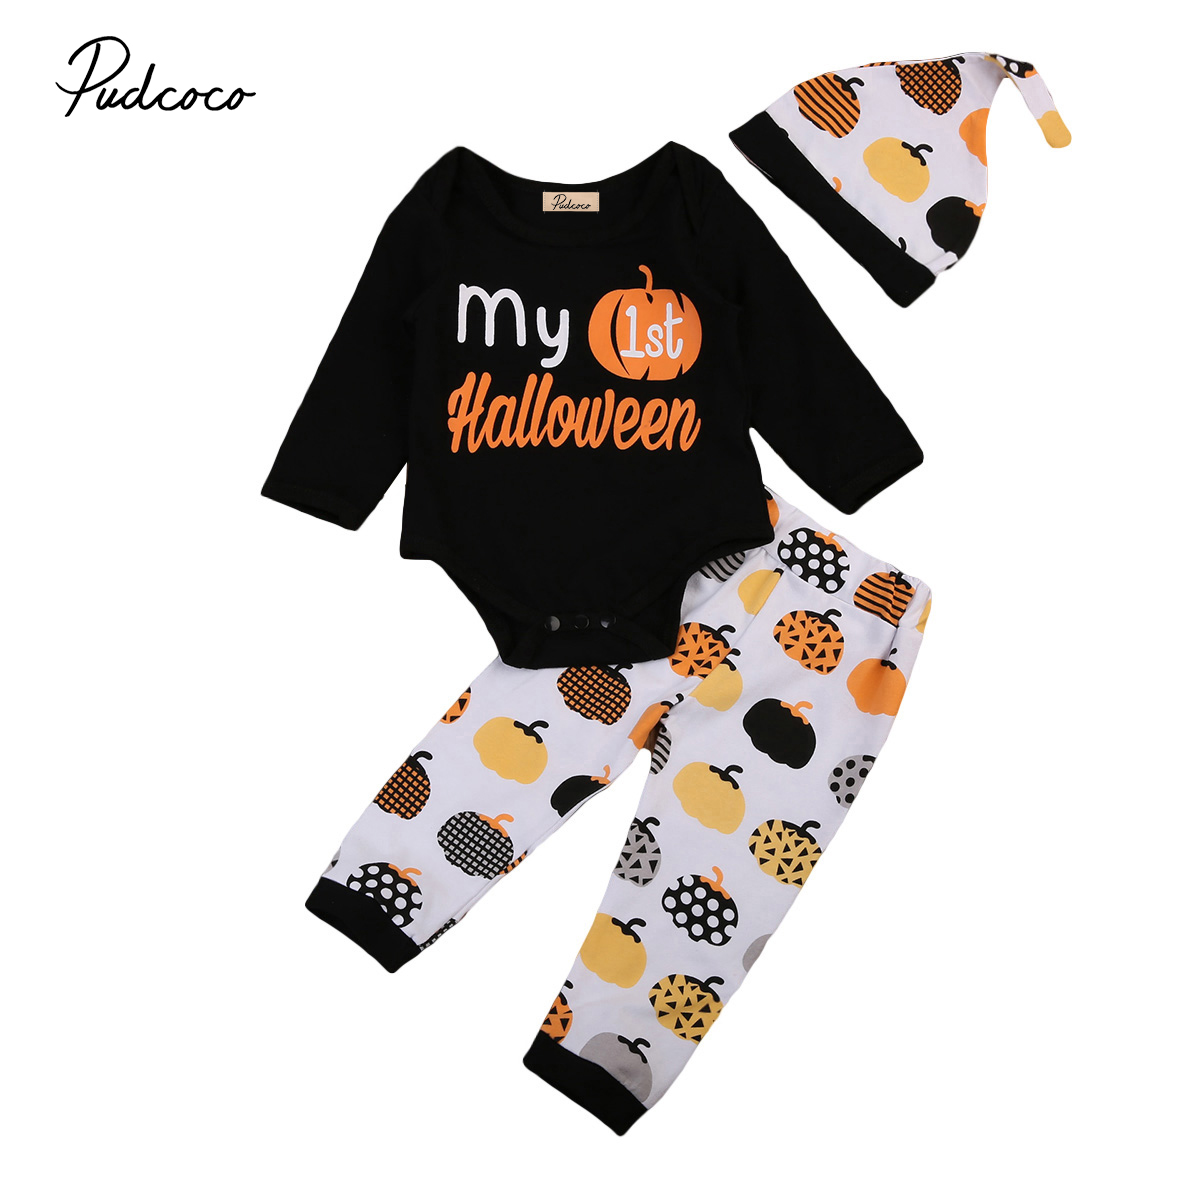 US 3PCS Toddler Baby Boy Girl Long Sleeve Autumn Clothes Romper Pants Cap Outfit